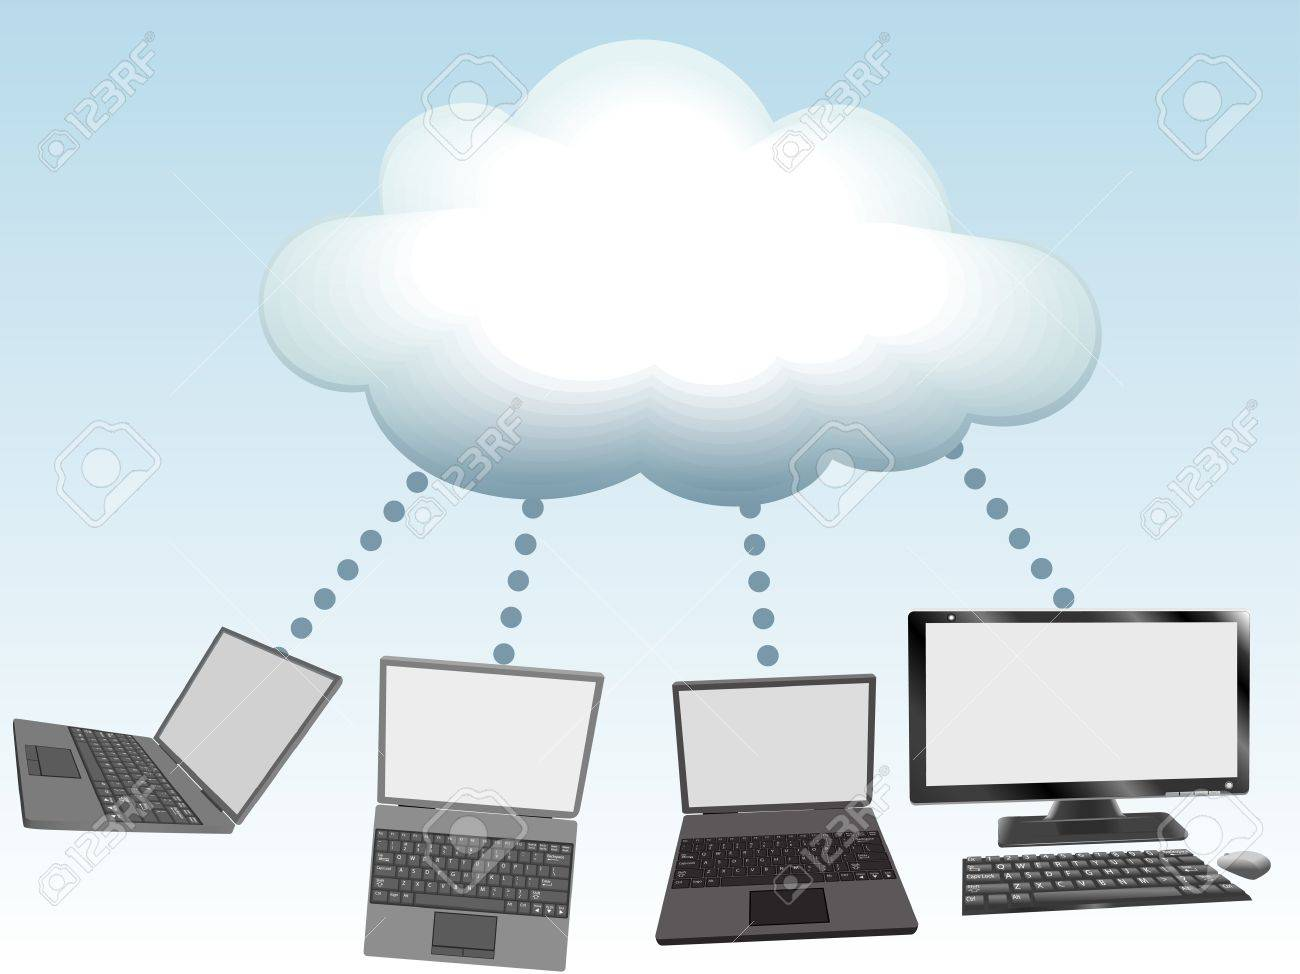 Laptop and desktop computers connect to cloud computing network information technology Stock Vector - 10101381